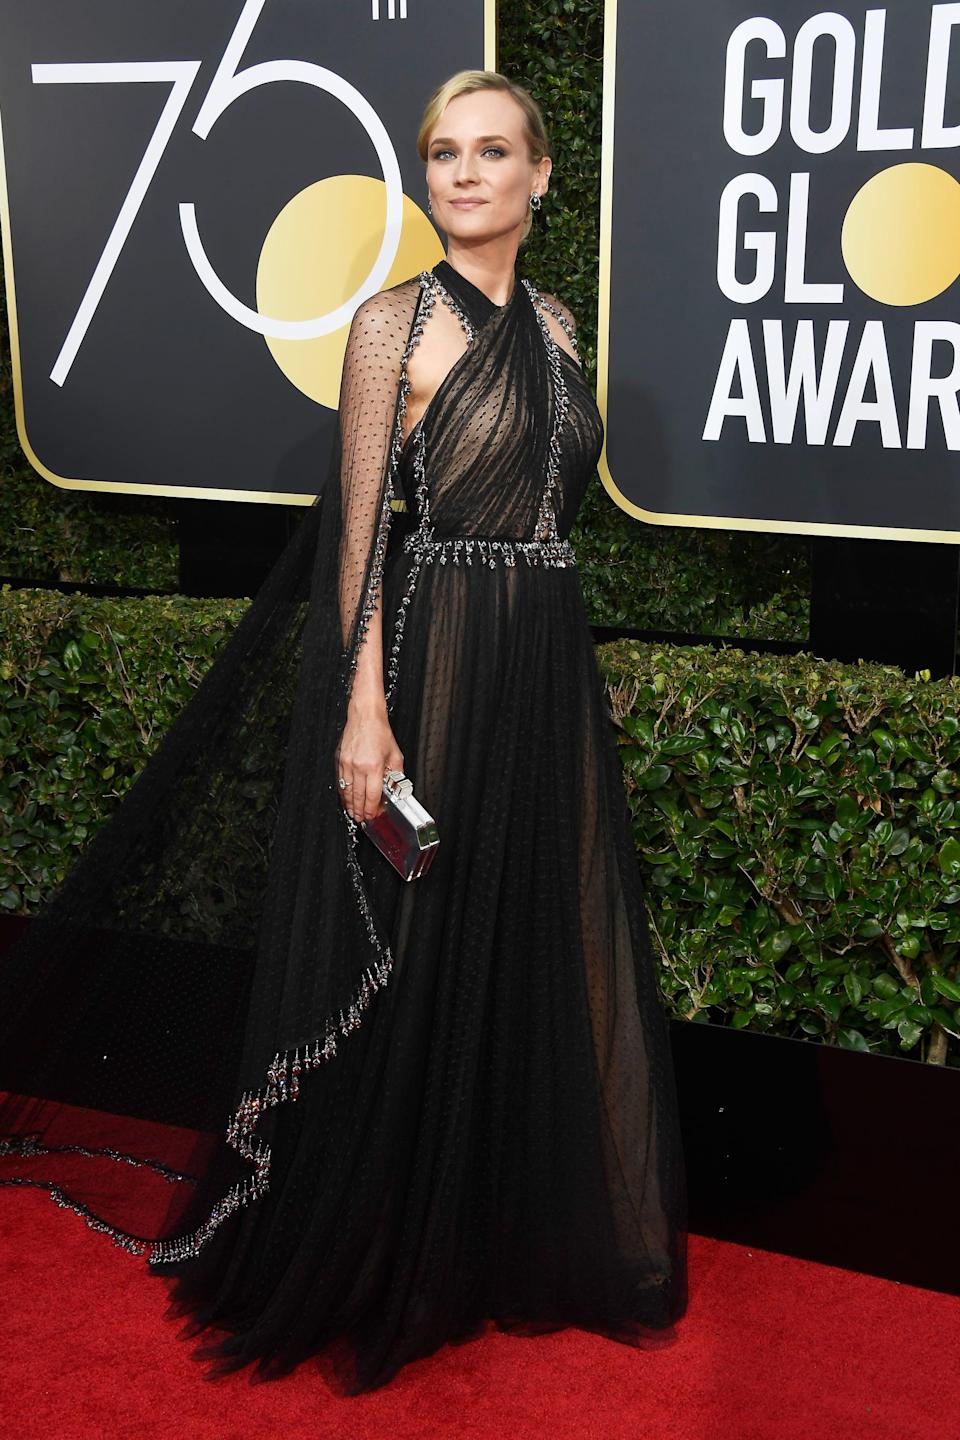 <p>Wearing a Prada dress with Fred Leighton jewels and a Judith Leiber clutch at the 2018 Globes. </p>